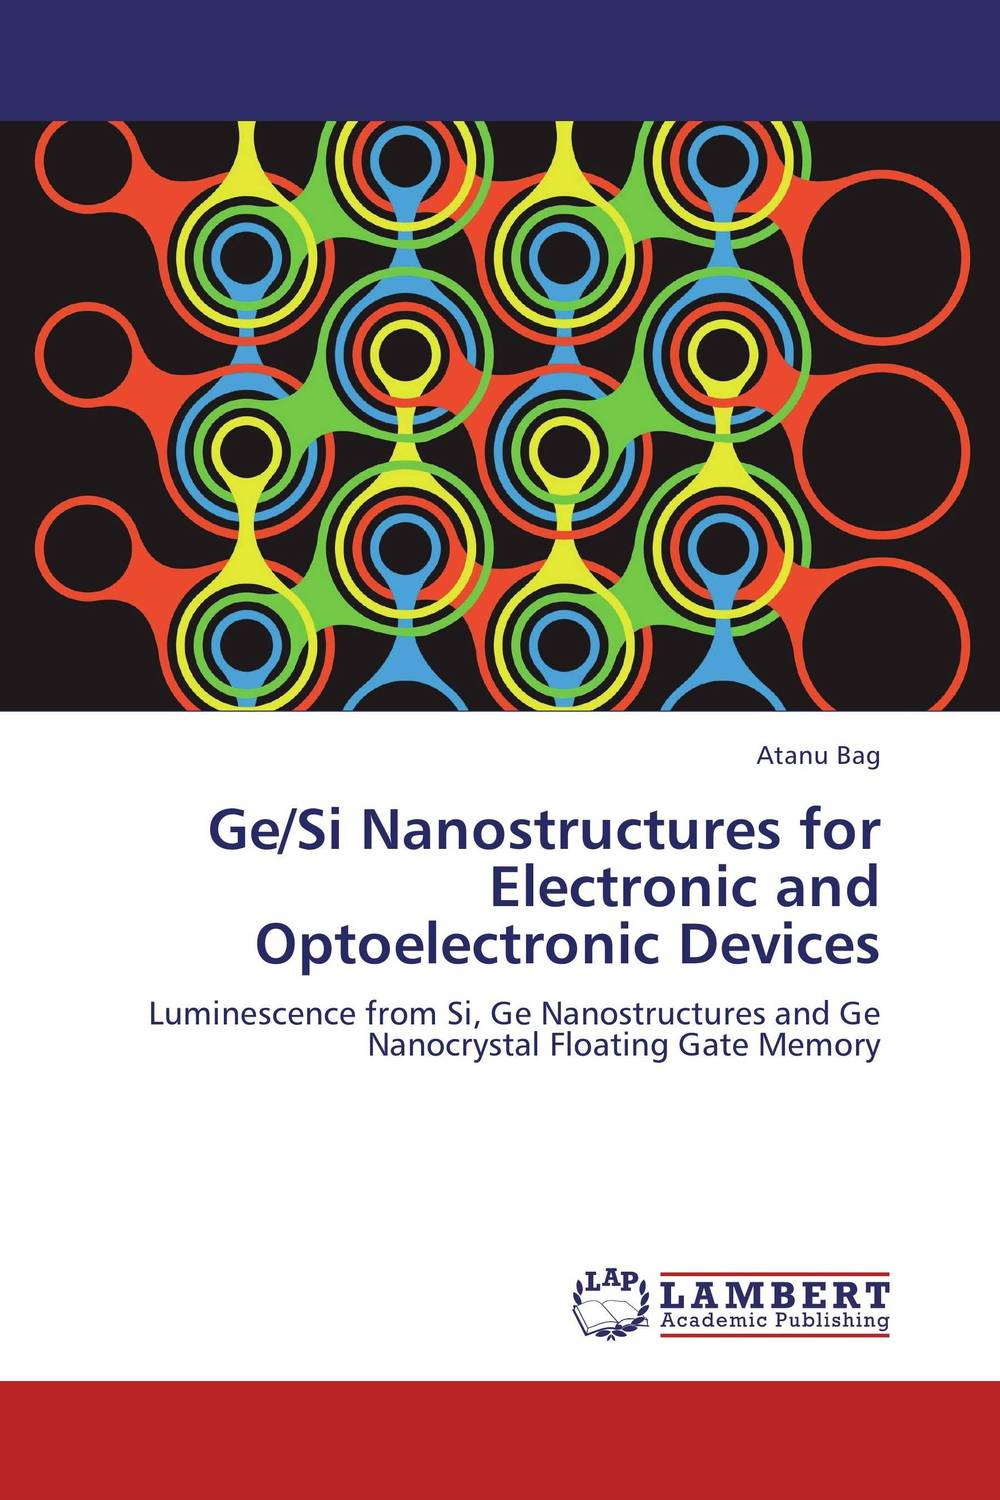 Ge/Si Nanostructures for Electronic and Optoelectronic Devices